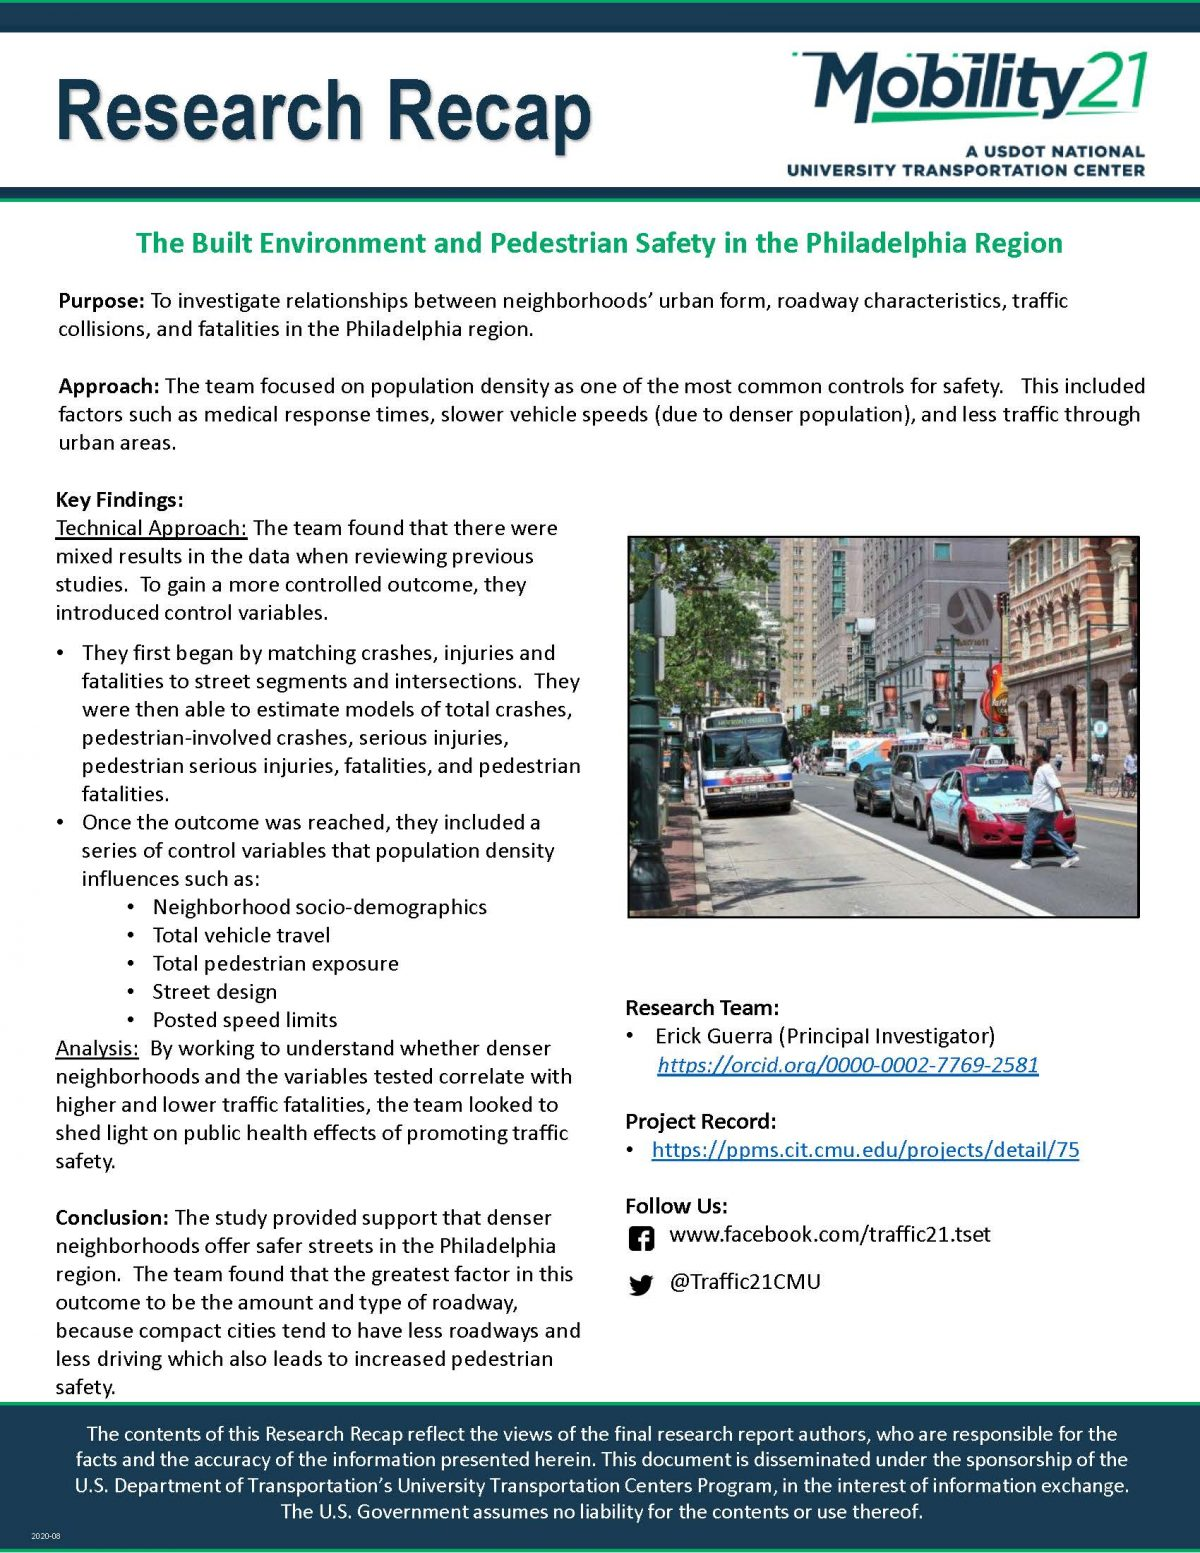 Image of the Research Recap: The Built Environment and Pedestrian Safety in the Philadelphia Region